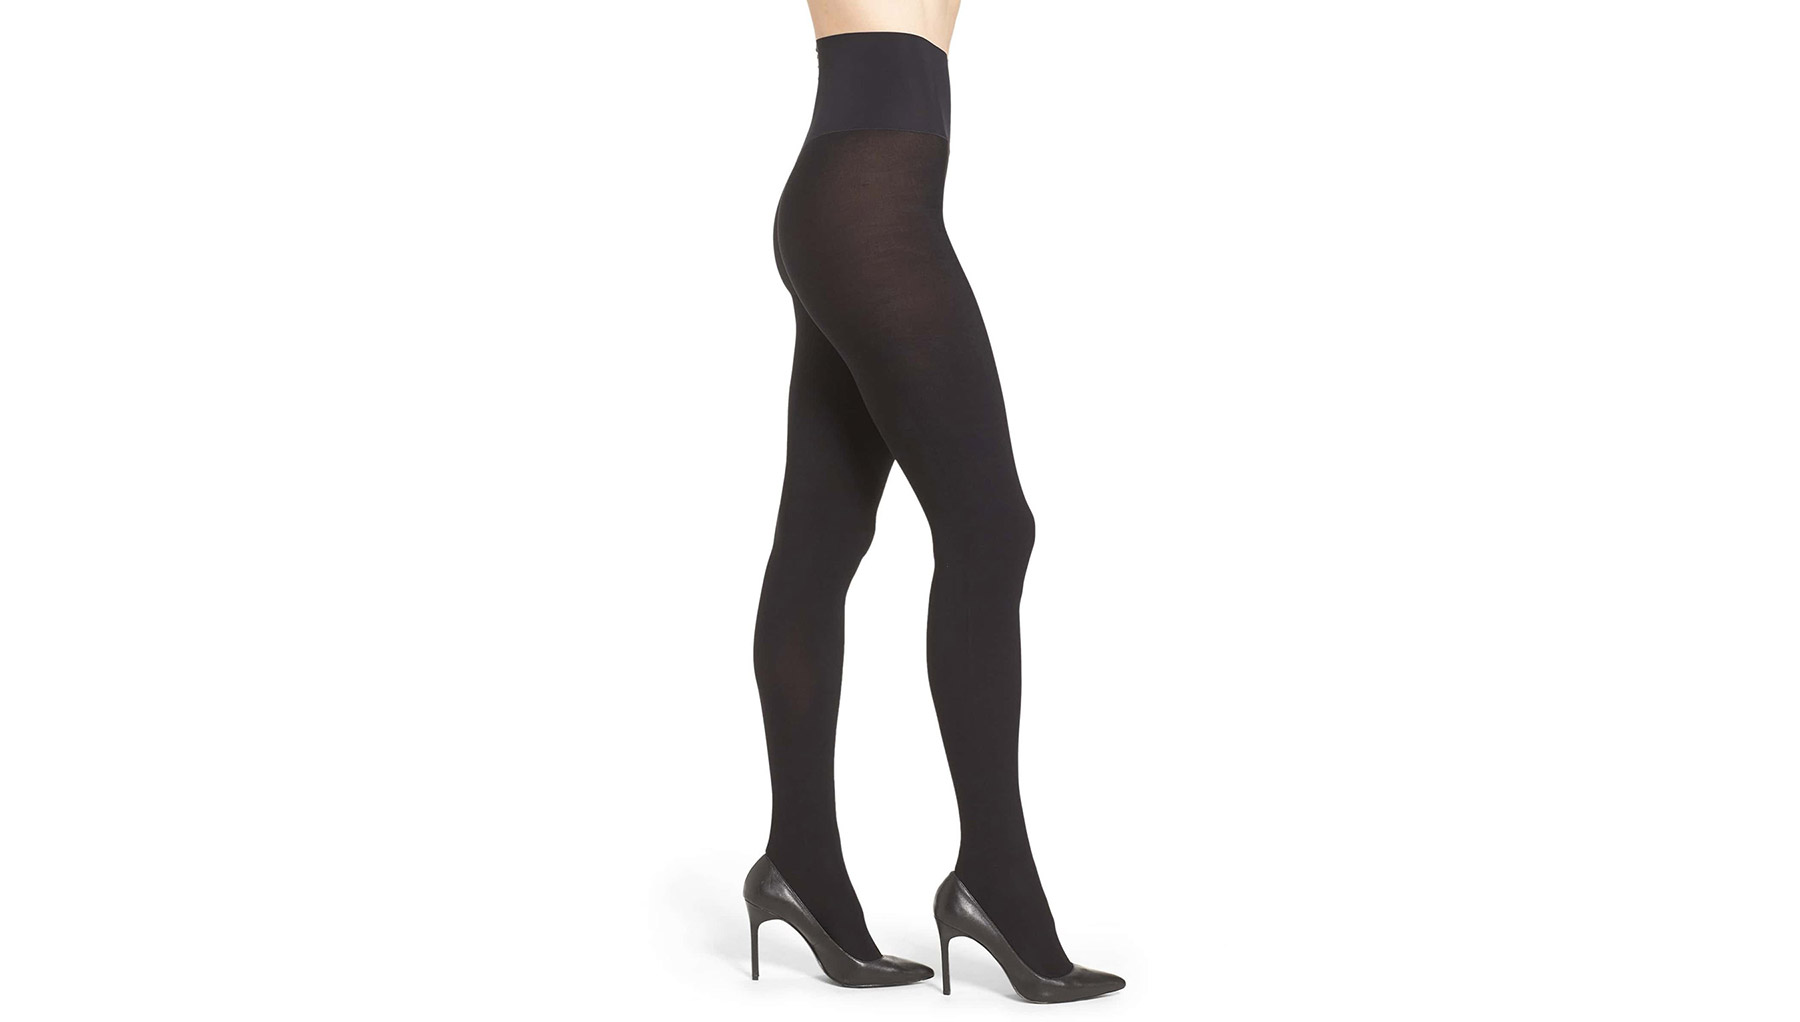 Commando 'Eclipse Opaque' Tights